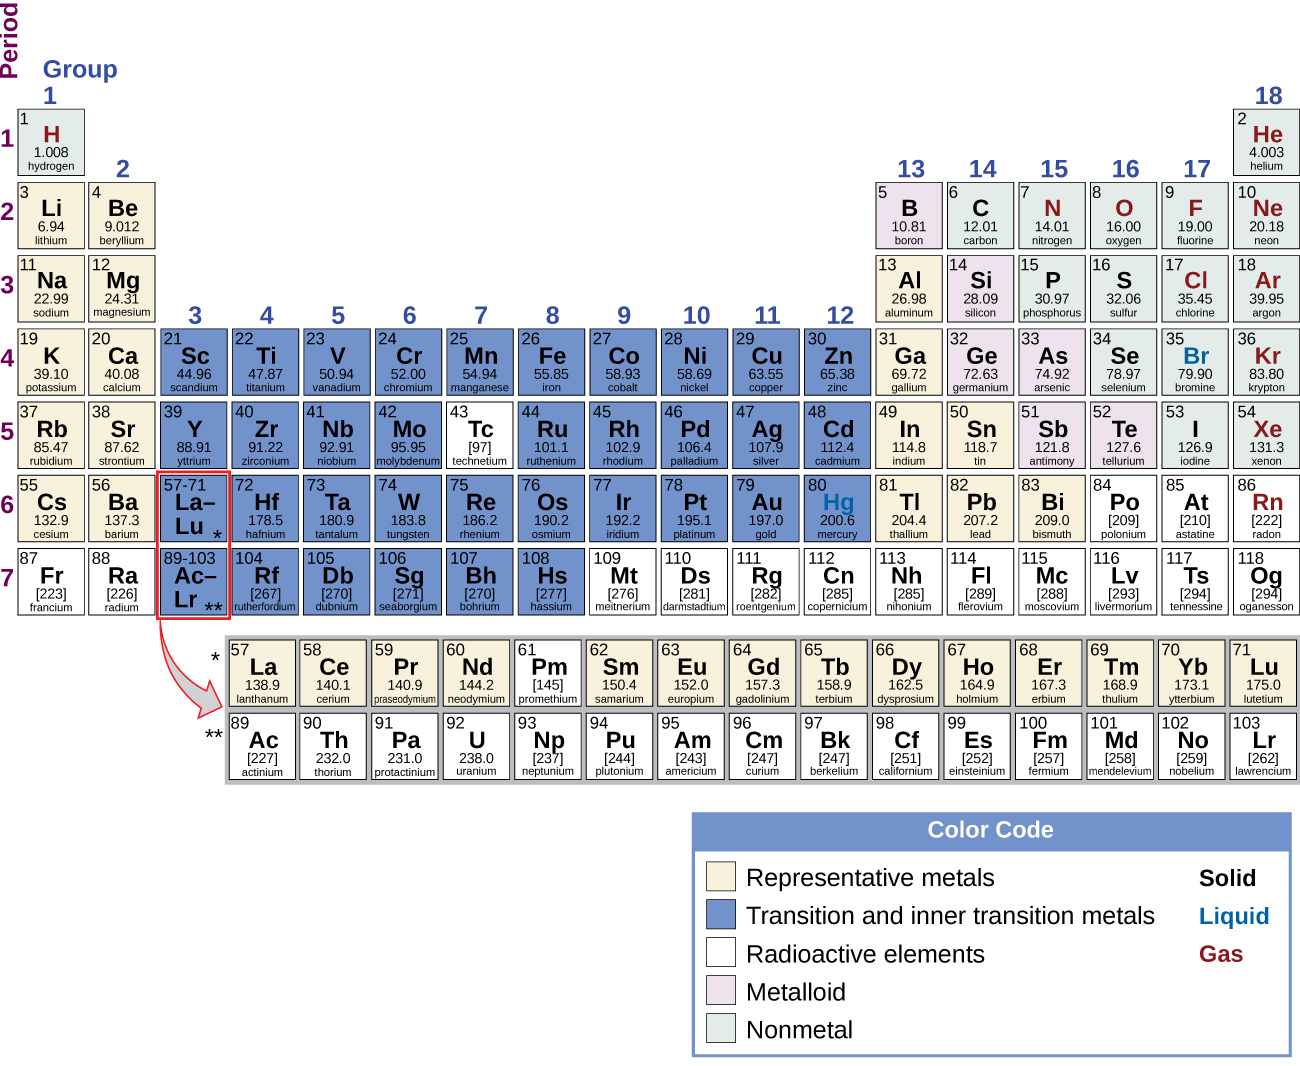 """The Periodic Table of Elements is shown. The 18 columns are labeled """"Group"""" and the 7 rows are labeled """"Period."""" Below the table to the right is a box labeled """"Color Code"""" with different colors for representative metals, transition and inner transition metals, radioactive elements, metalloids, and nonmetals, as well as solids, liquids, and gases. Each element will be described in this order: atomic number; name; symbol; whether it is a representative metal, transition and inner transition metal, radioactive element, metalloid, or nonmetal; whether it is a solid, liquid, or gas; and atomic mass. Beginning at the top left of the table, or period 1, group 1, is a box containing """"1; hydrogen; H; nonmetal; gas; and 1.008."""" There is only one other element box in period 1, group 18, which contains """"2; helium; H e; nonmetal; gas; and 4.003."""" Period 2, group 1 contains """"3; lithium; L i; representative metal; solid; and 6.94"""" Group 2 contains """"4; beryllium; B e; representative metal; solid; and 9.012."""" Groups 3 through 12 are skipped and group 13 contains """"5; boron; B; metalloid; solid; 10.81."""" Group 14 contains """"6; carbon; C; nonmetal; solid; and 12.01."""" Group 15 contains """"7; nitrogen; N; nonmetal; gas; and 14.01."""" Group 16 contains """"8; oxygen; O; nonmetal; gas; and 16.00."""" Group 17 contains """"9; fluorine; F; nonmetal; gas; and 19.00."""" Group 18 contains """"10; neon; N e; nonmetal; gas; and 20.18."""" Period 3, group 1 contains """"11; sodium; N a; representative metal; solid; and 22.99."""" Group 2 contains """"12; magnesium; M g; representative metal; solid; and 24.31."""" Groups 3 through 12 are skipped again in period 3 and group 13 contains """"13; aluminum; A l; representative metal; solid; and 26.98."""" Group 14 contains """"14; silicon; S i; metalloid; solid; and 28.09."""" Group 15 contains """"15; phosphorous; P; nonmetal; solid; and 30.97."""" Group 16 contains """"16; sulfur; S; nonmetal; solid; and 32.06."""" Group 17 contains """"17; chlorine; C l; nonmetal; gas; and 35.45."""" Group 18 contains """"18; argon; """